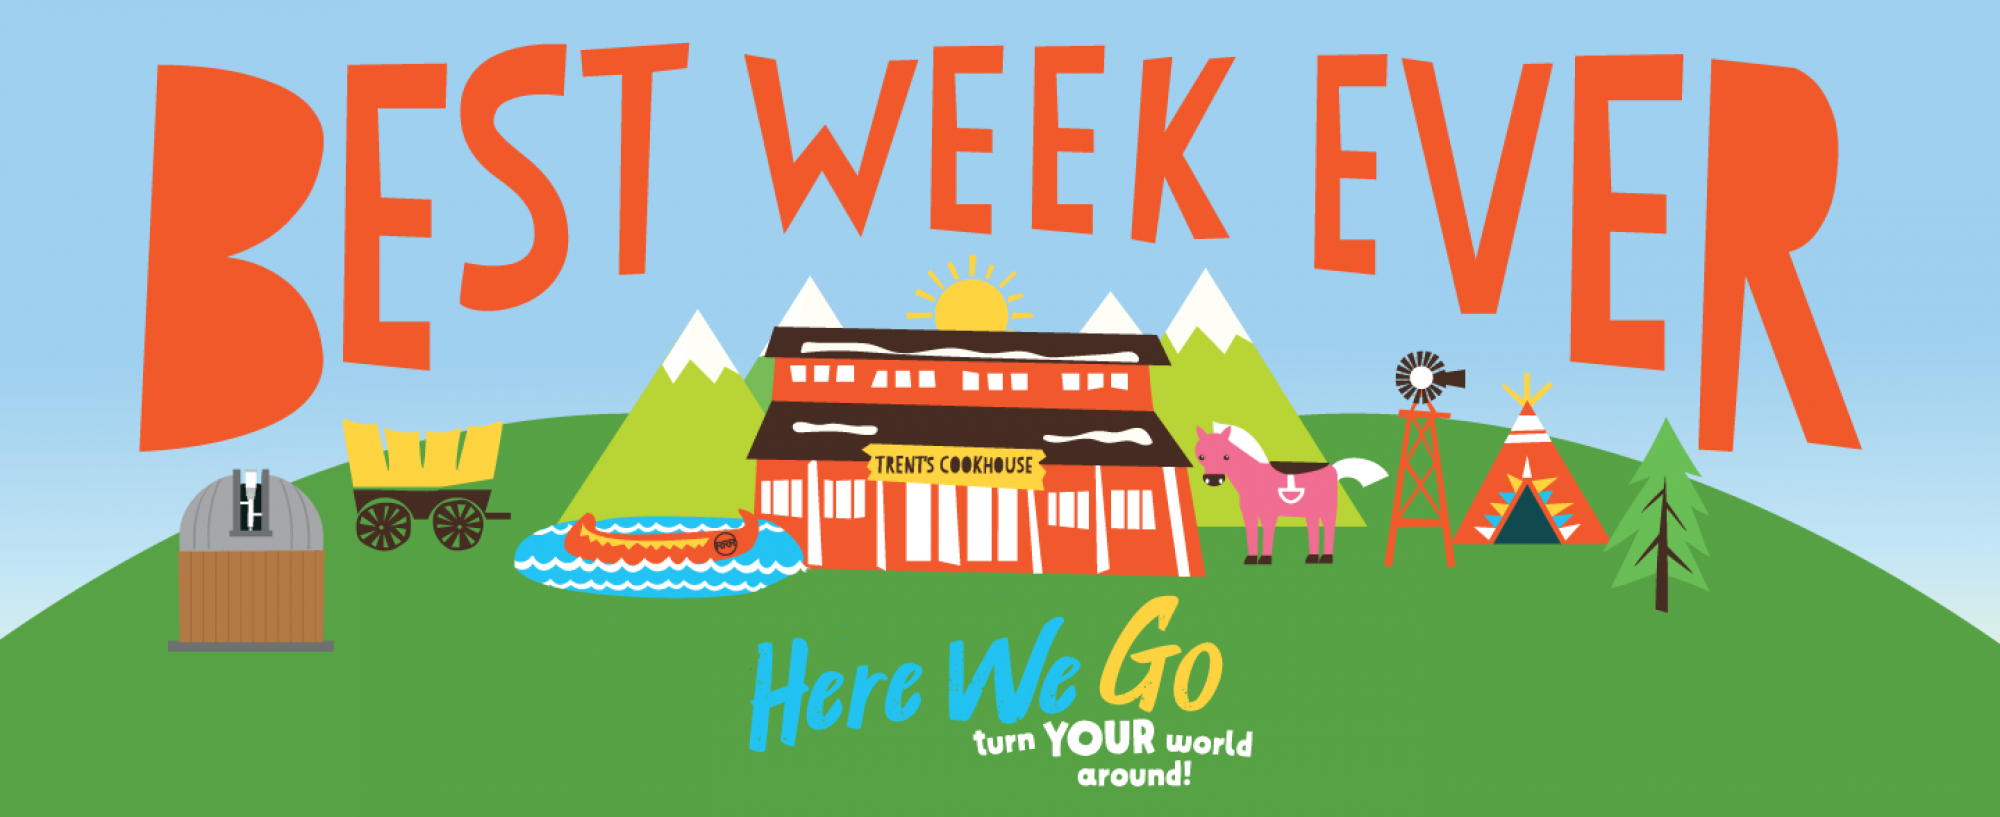 Best Week Ever - Here We Go - turn Your world around!